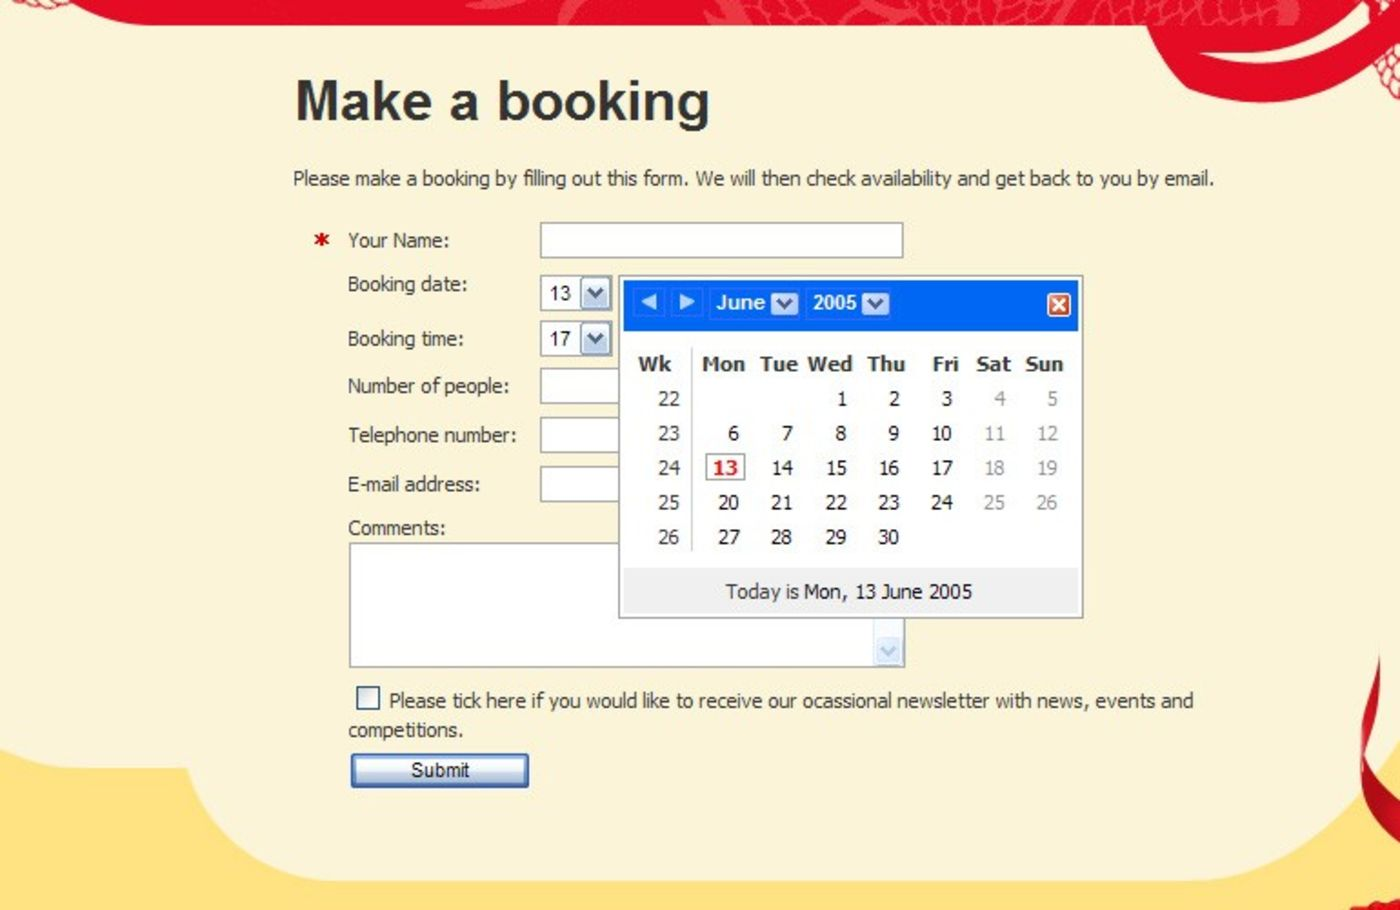 Mister Fu's Cantonese Restaurant Booking form